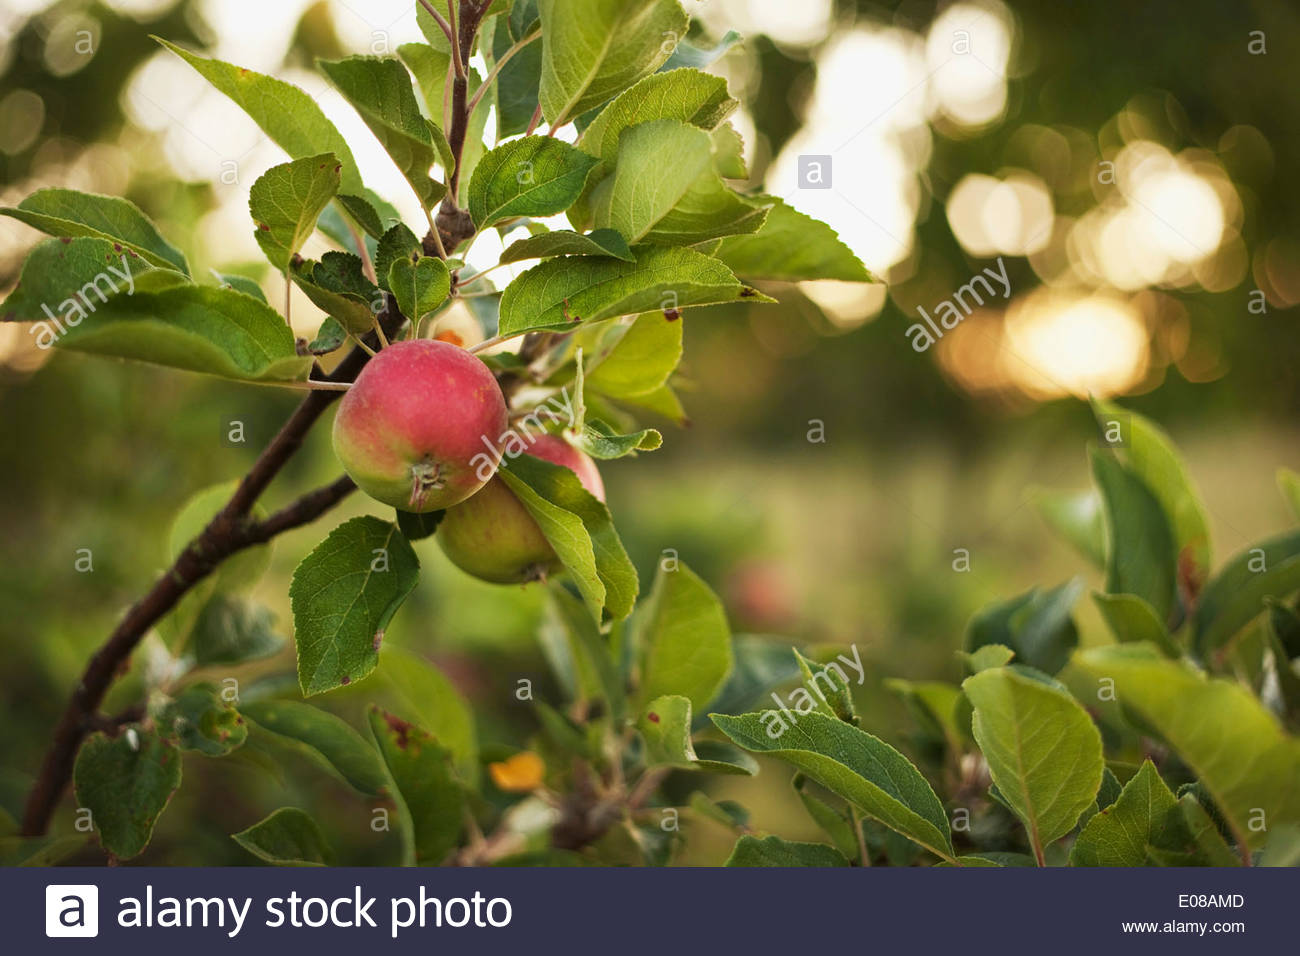 Apples growing on tree - Stock Image